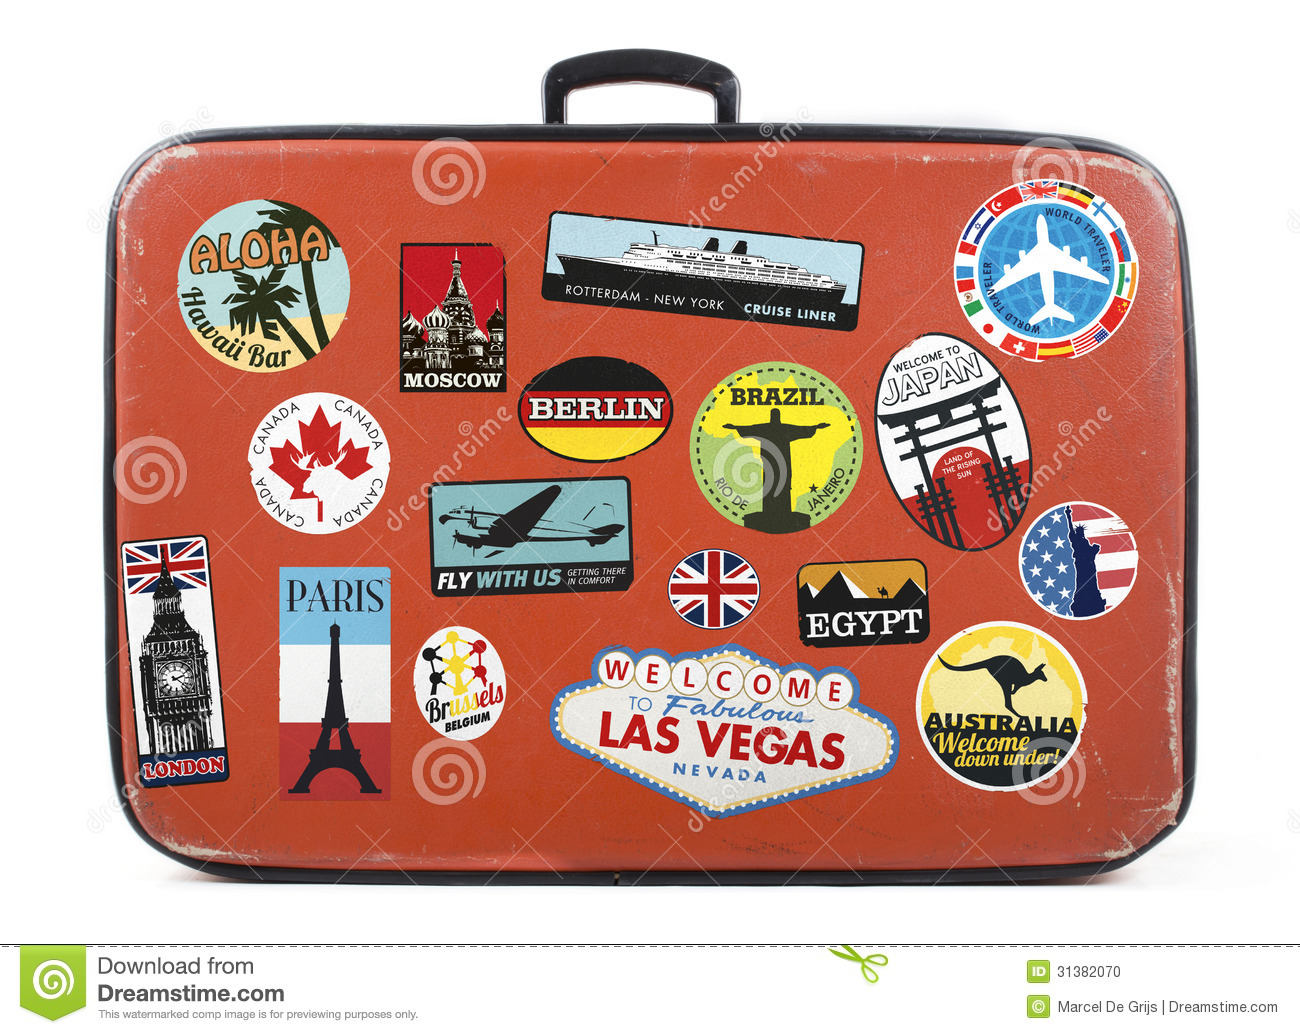 Old worn suitcase with travel stickers from around the world.